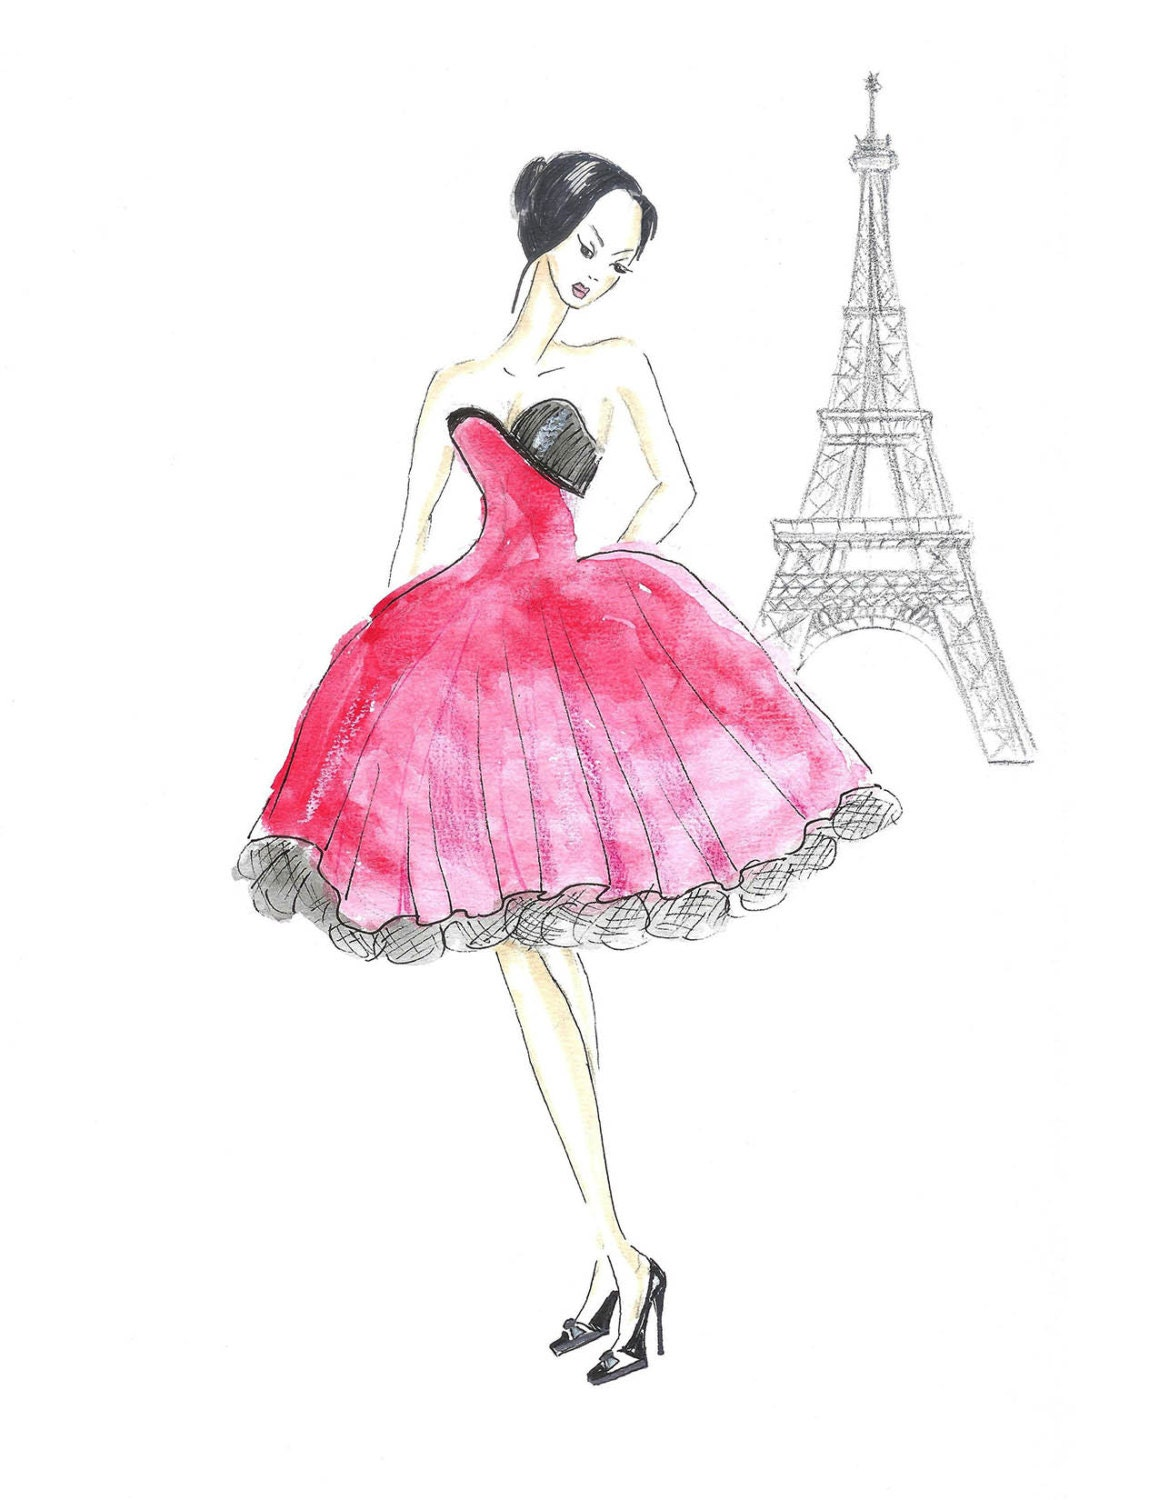 Womens Fashion Illustrations To Create Your Own Designs